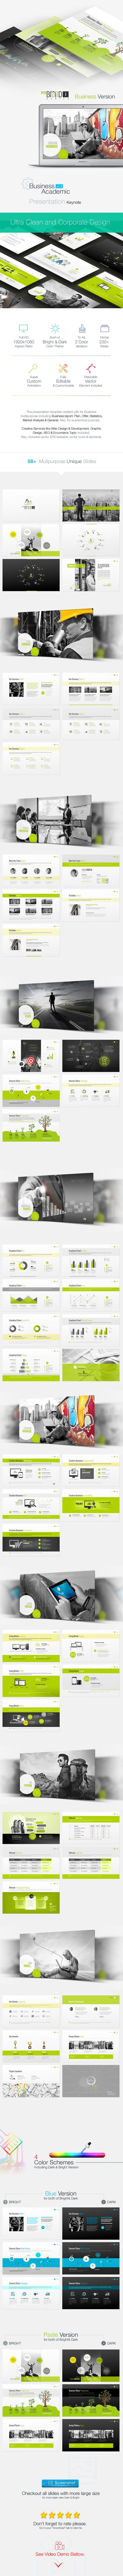 ProBrand | Multipurpose Business Keynote - Business Keynote Templates